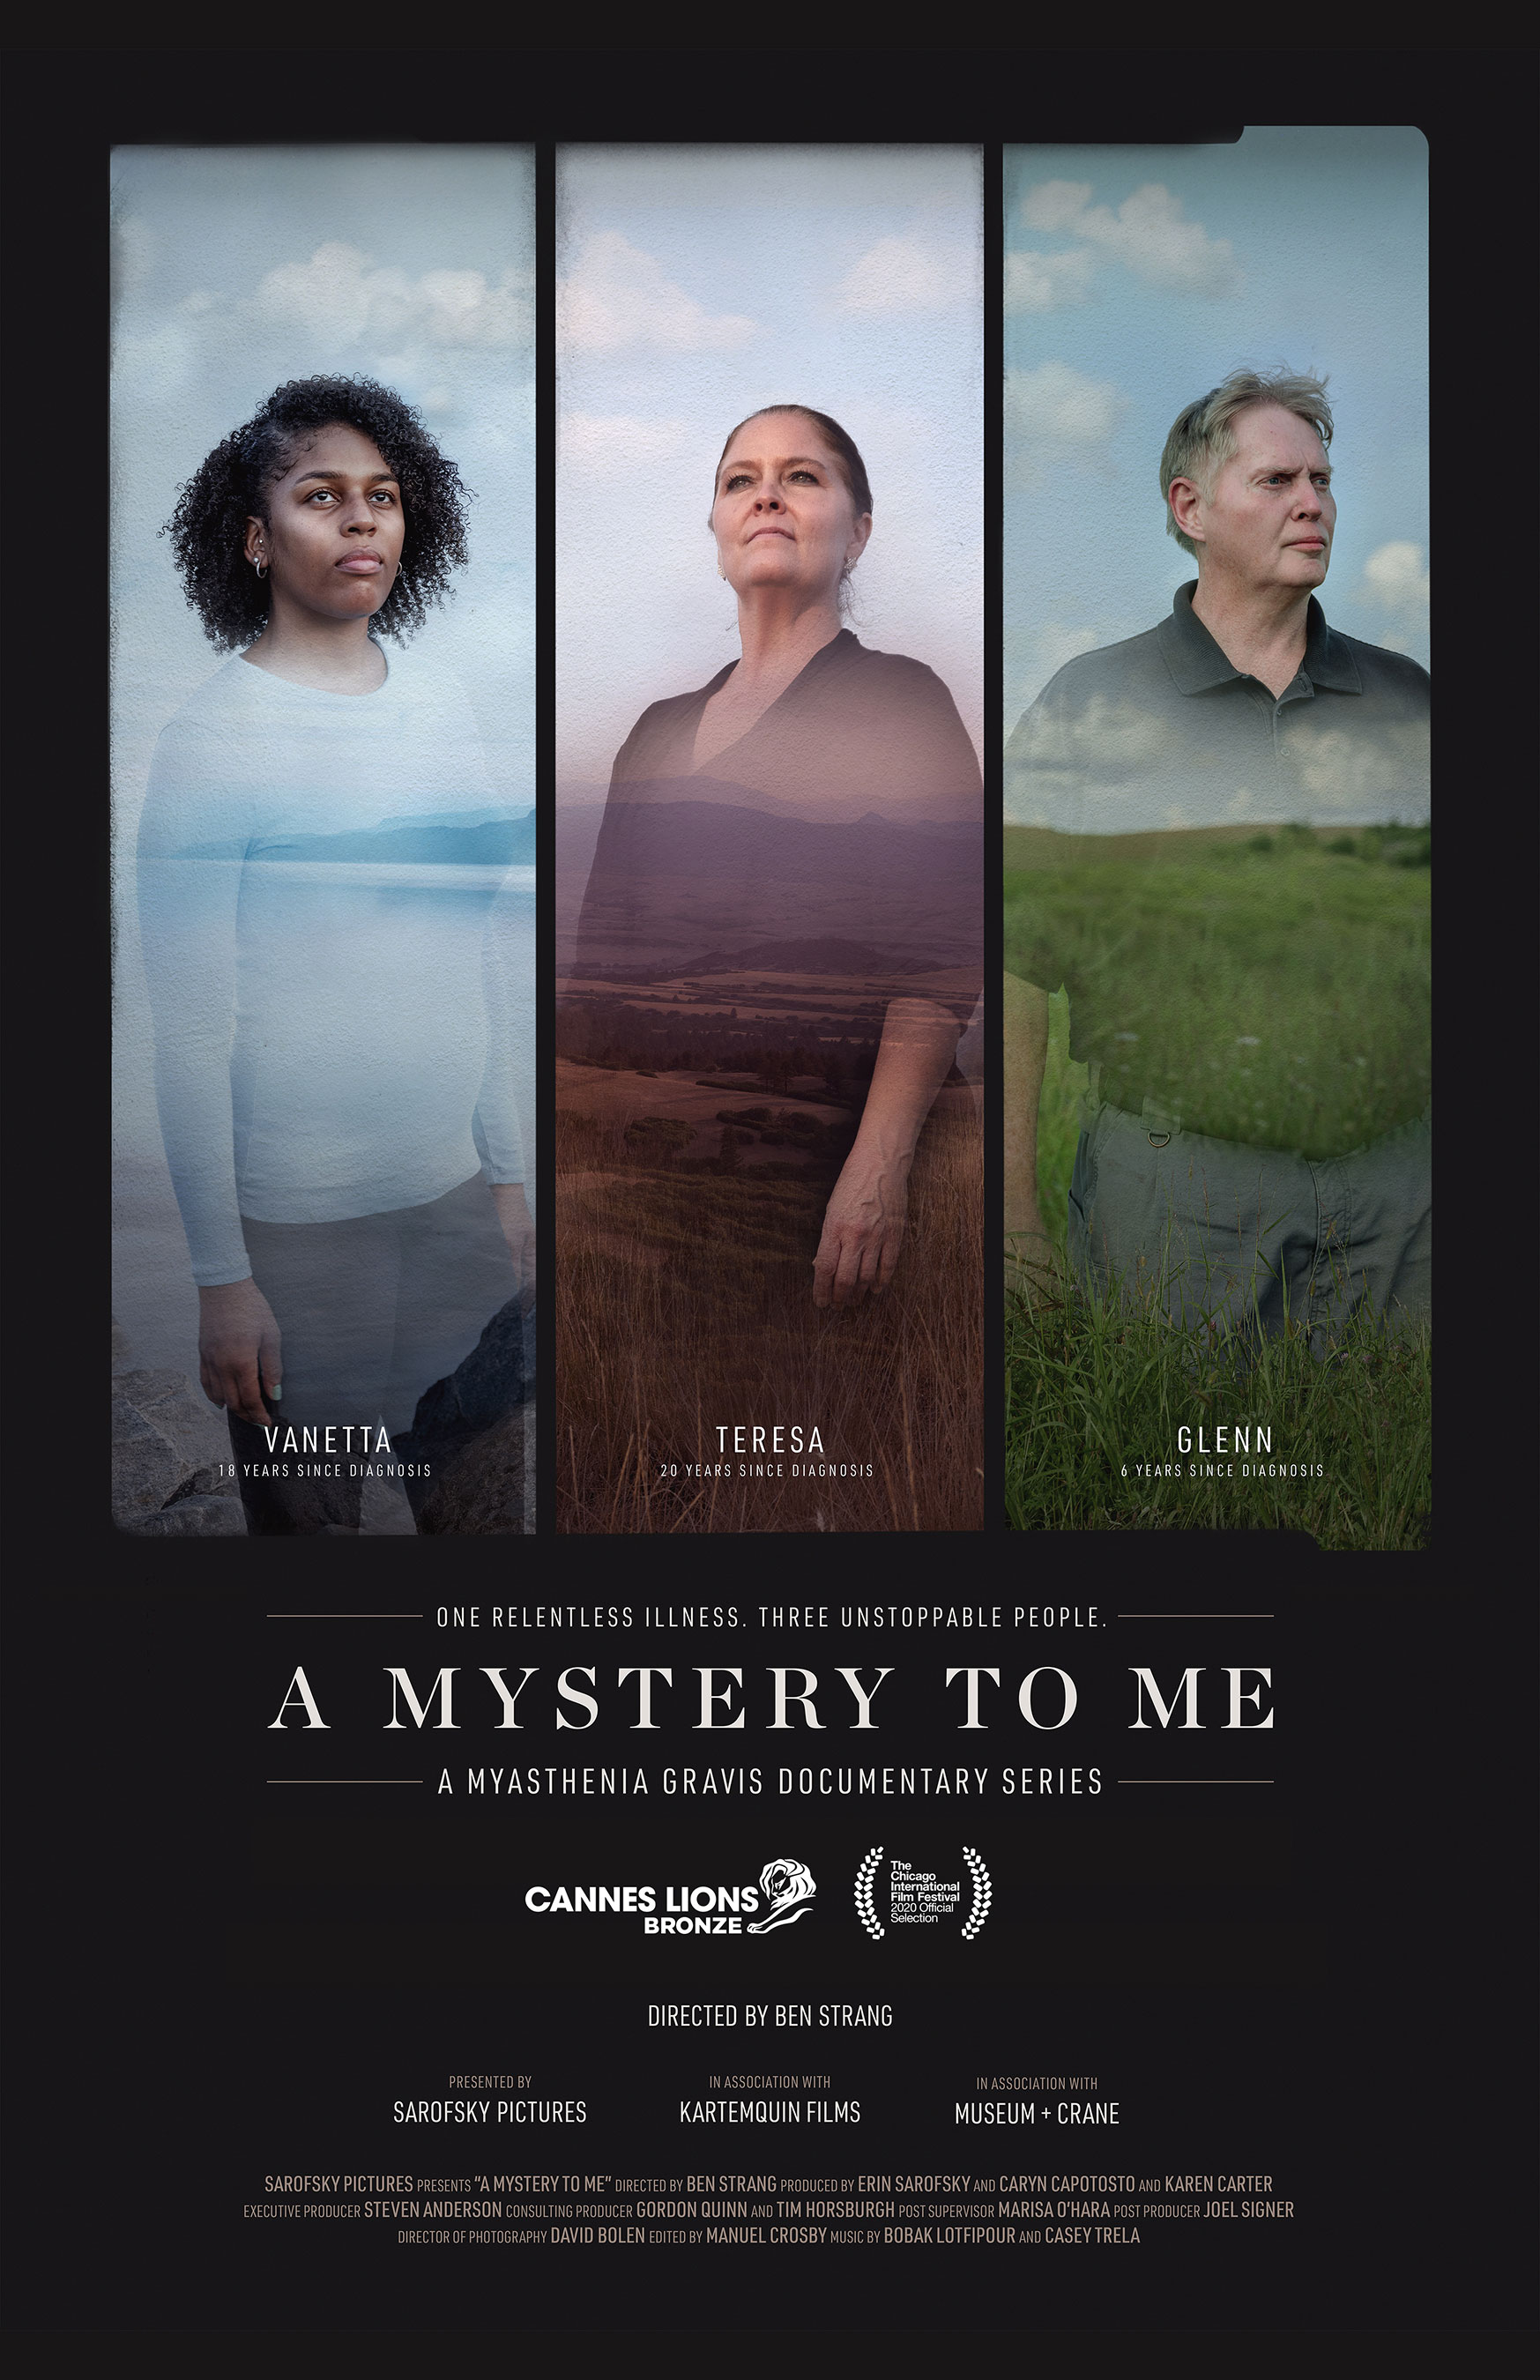 """In """"A Mystery to Me,"""" hear the untold stories of three people who must live with myasthenia gravis, a rare neuromuscular disease."""